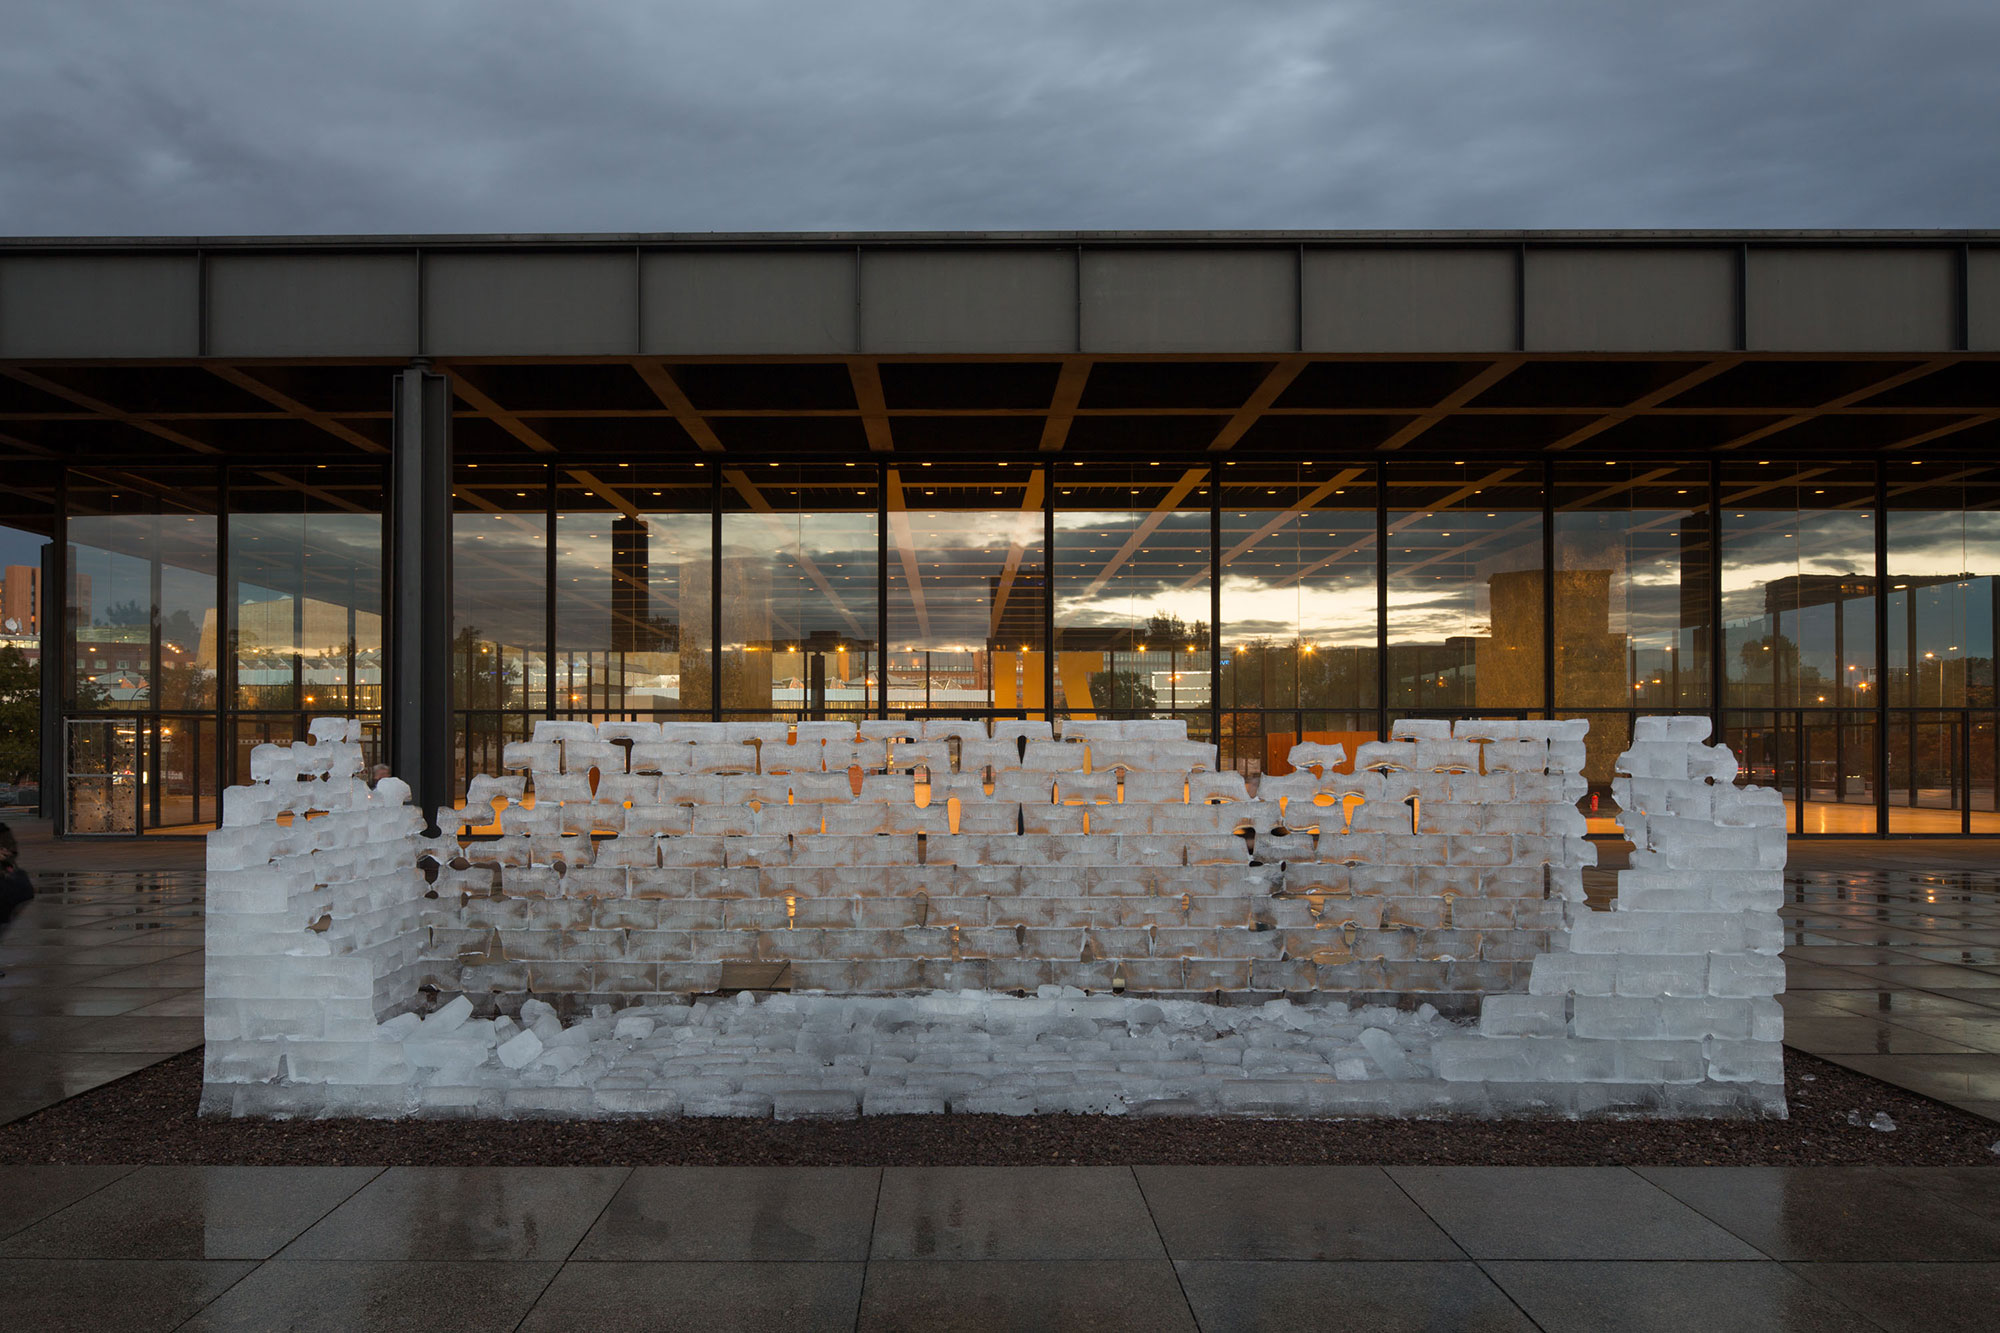 Allan Kaprow, Fluids , as recreated at the Neue Nationalgalerie on September 16, 2015 with support from the Allan Kaprow Estate and Hauser & Wirth. Photo copyright of Thomas Bruns.